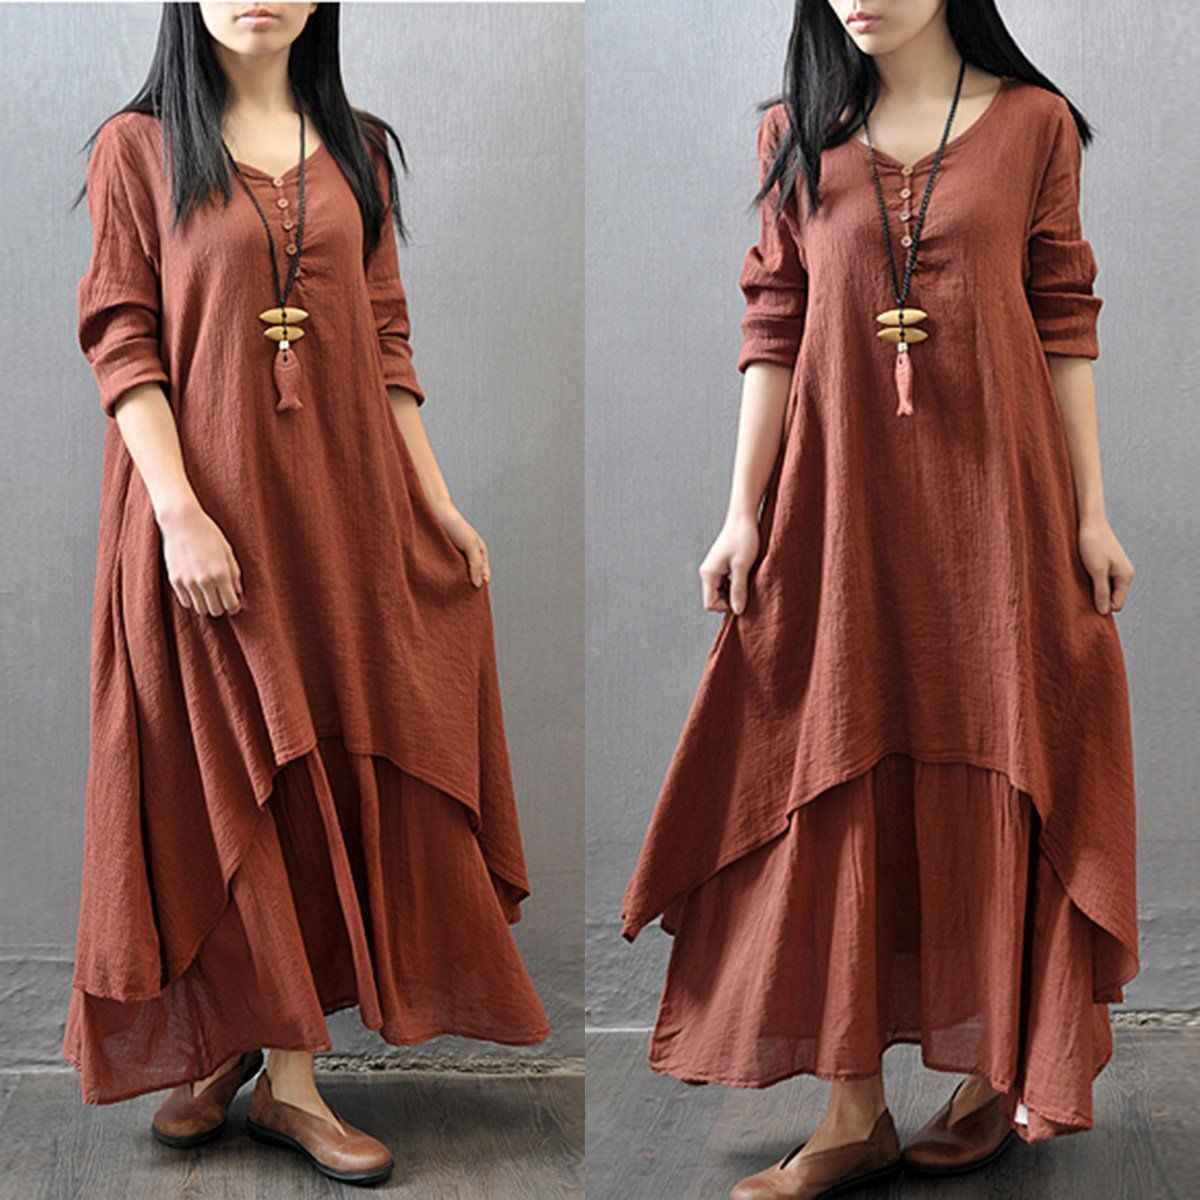 Women Ethnic Boho Cotton Linen Long Sleeve Dress Vintage Elegant Causal Summer Maxi Dresses Women 2019